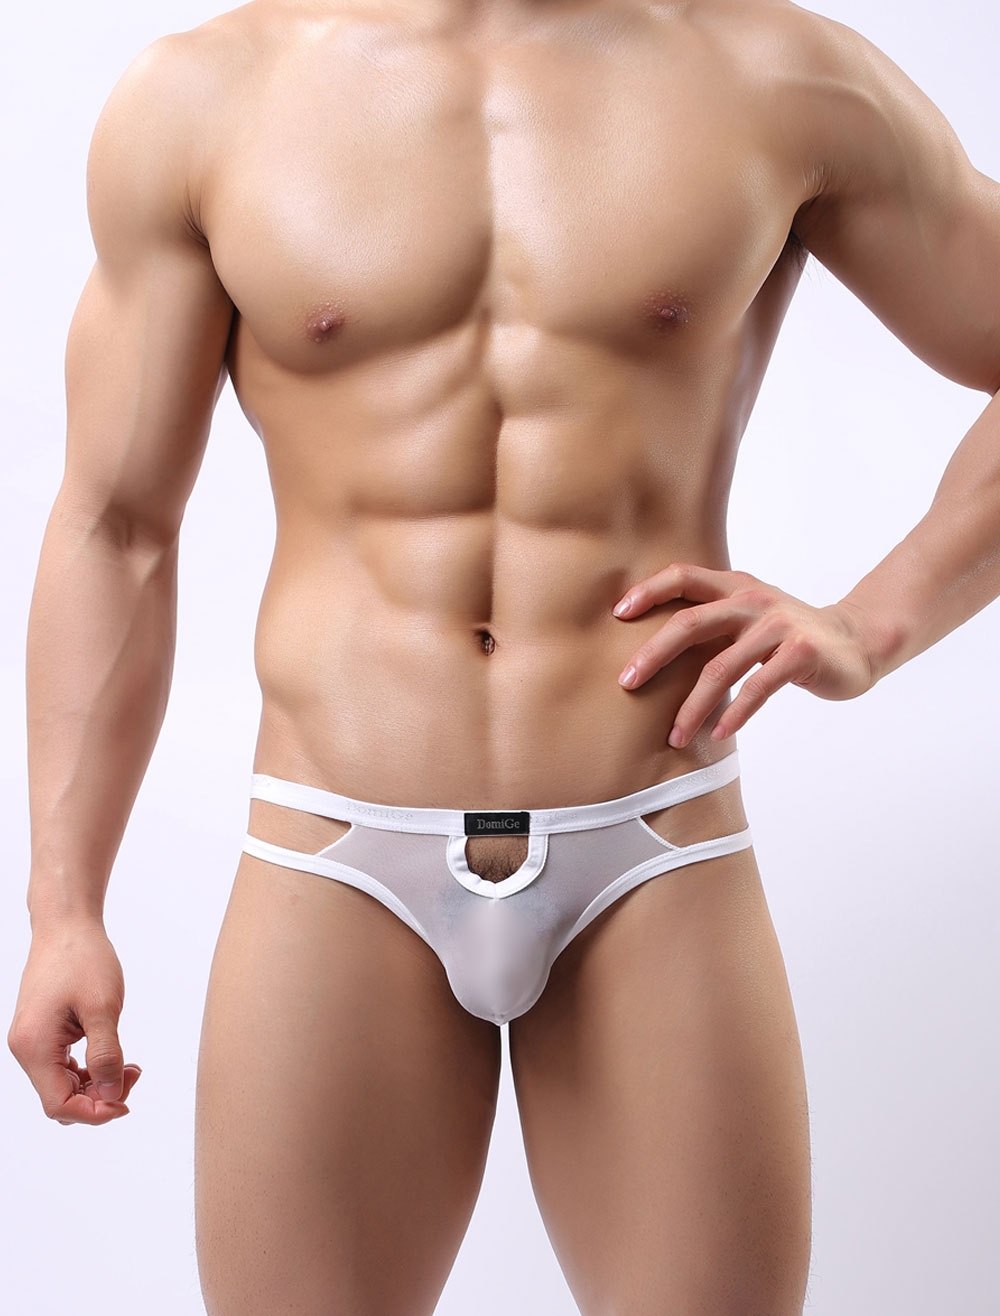 White Sexy Panties Men's Cut Out Semi-Sheer Strappy Underwear Lingerie